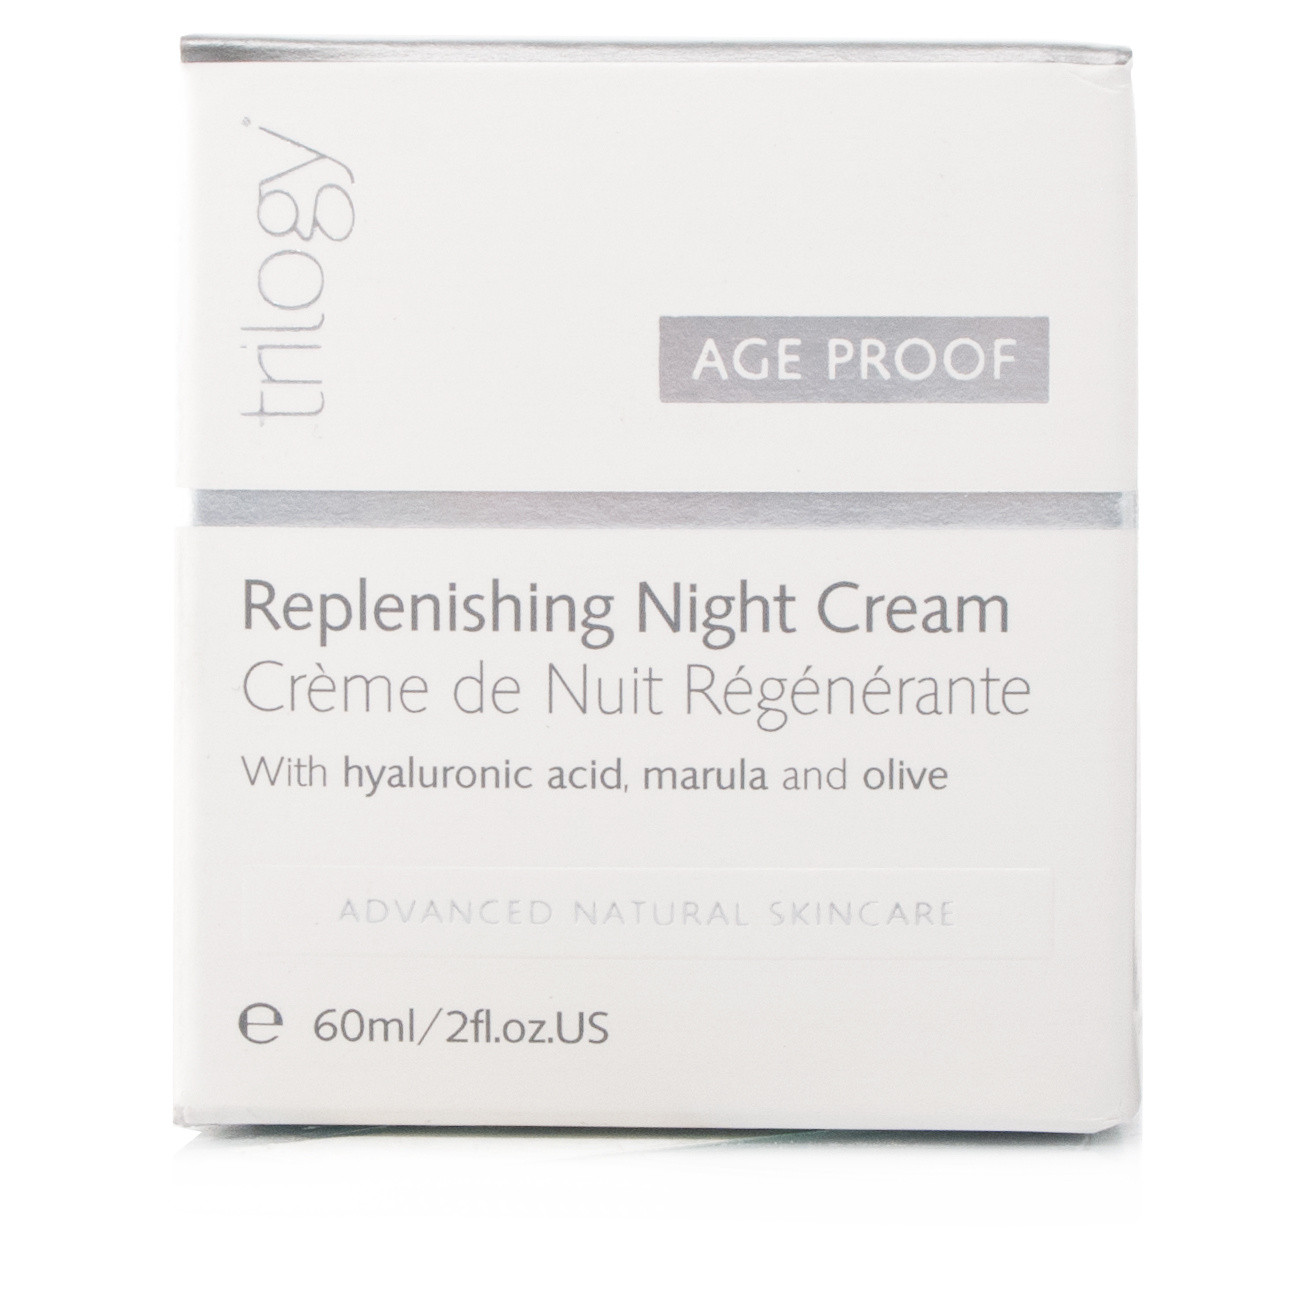 Trilogy Age-Proof Replenishing Night Cream 60ml